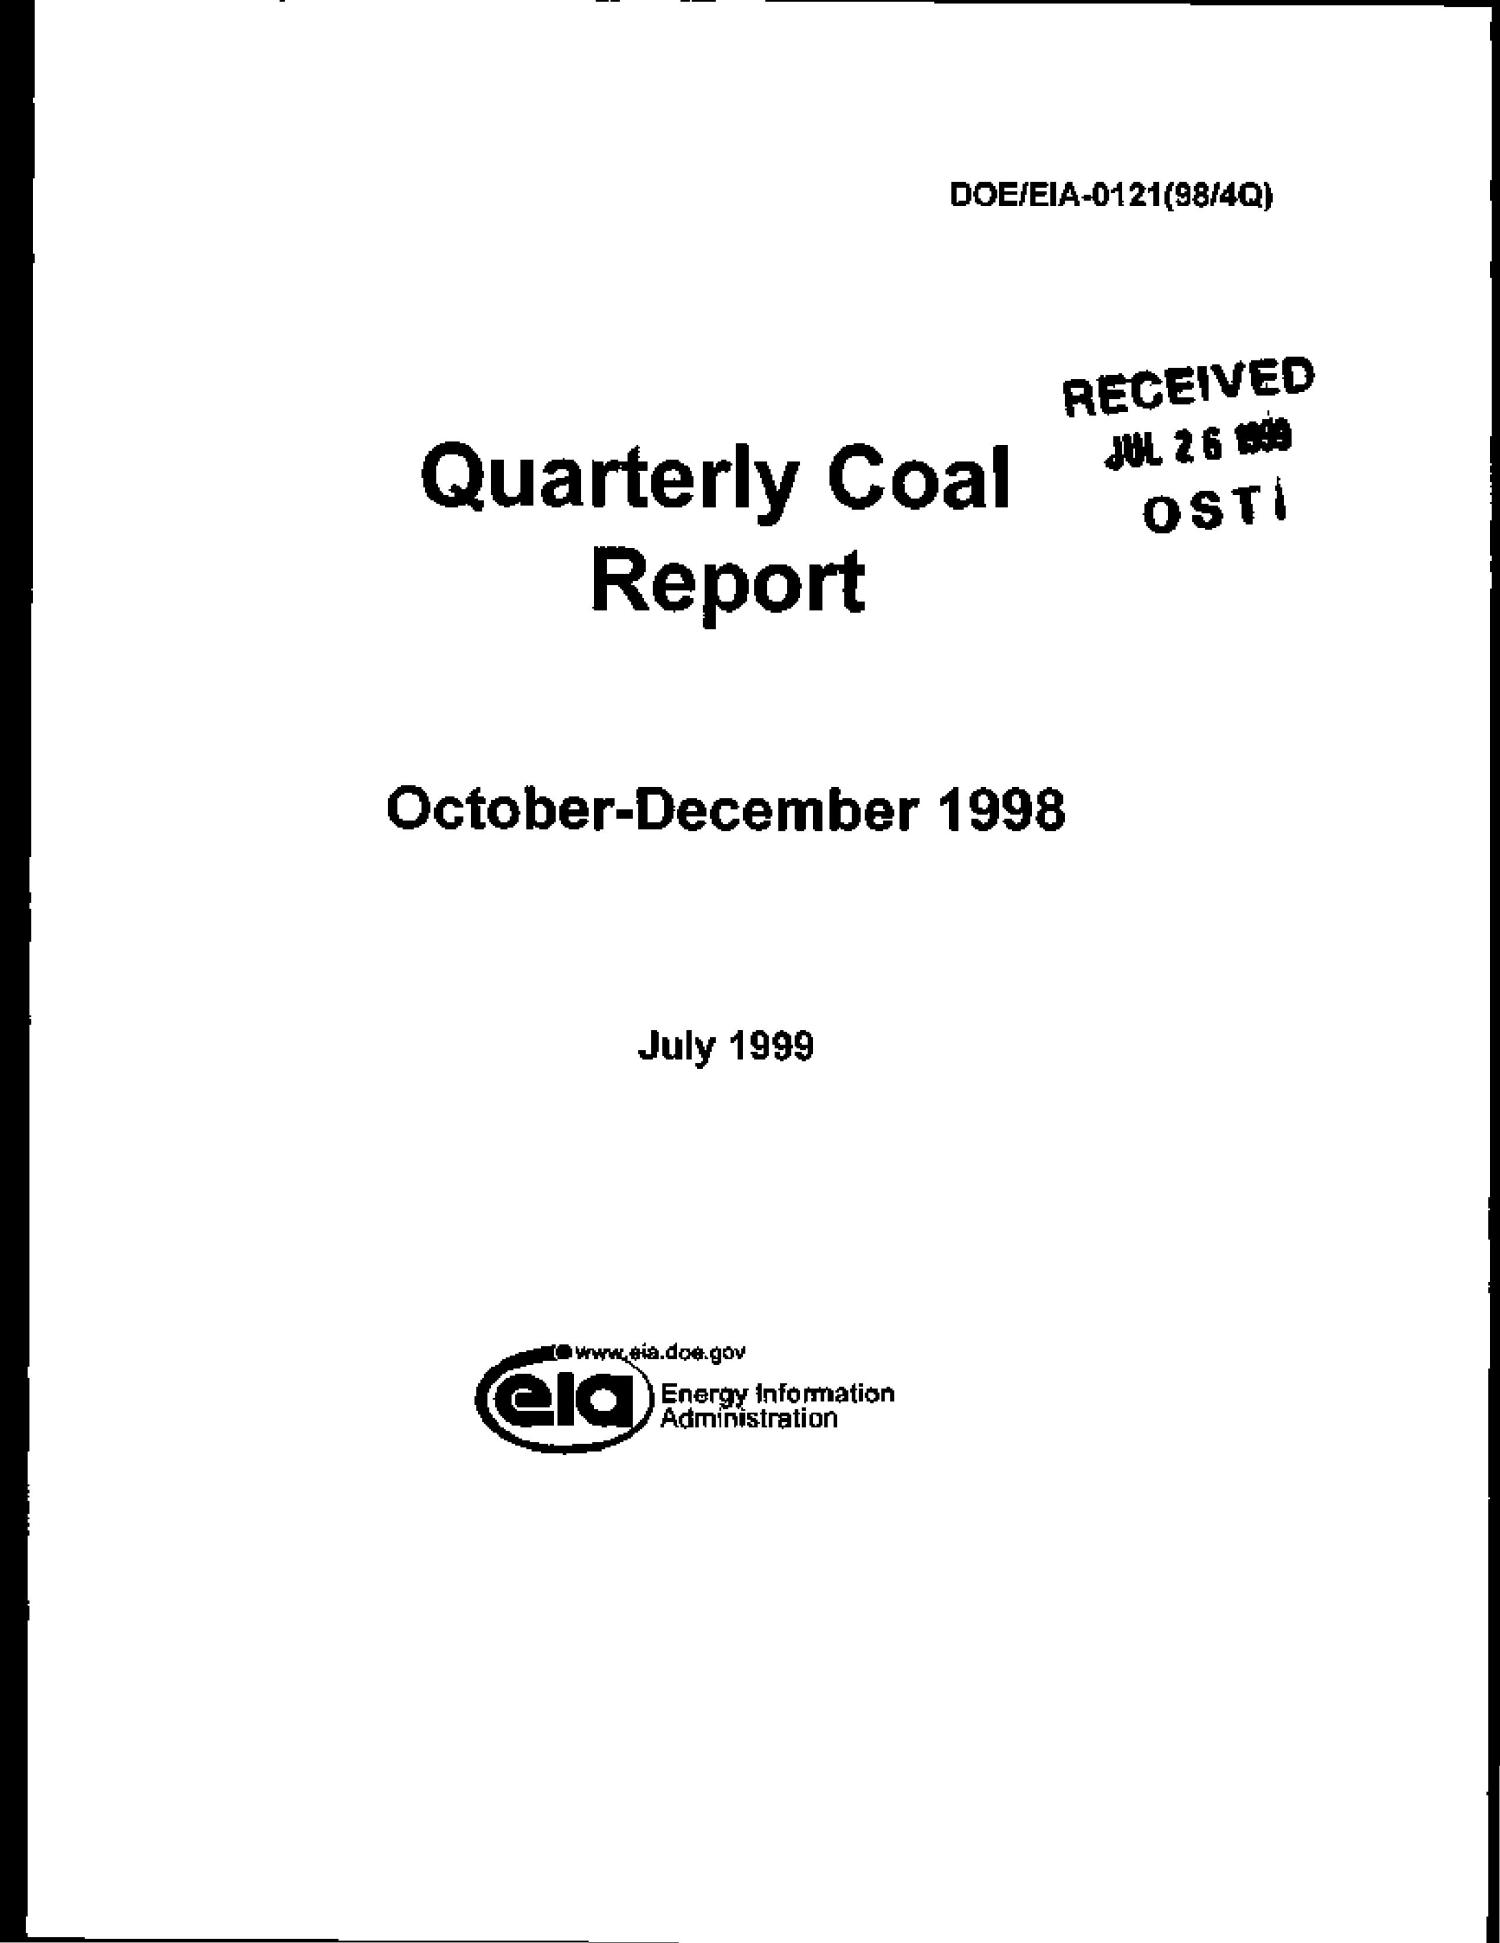 Quarterly coal report, October--December 1998                                                                                                      [Sequence #]: 1 of 114